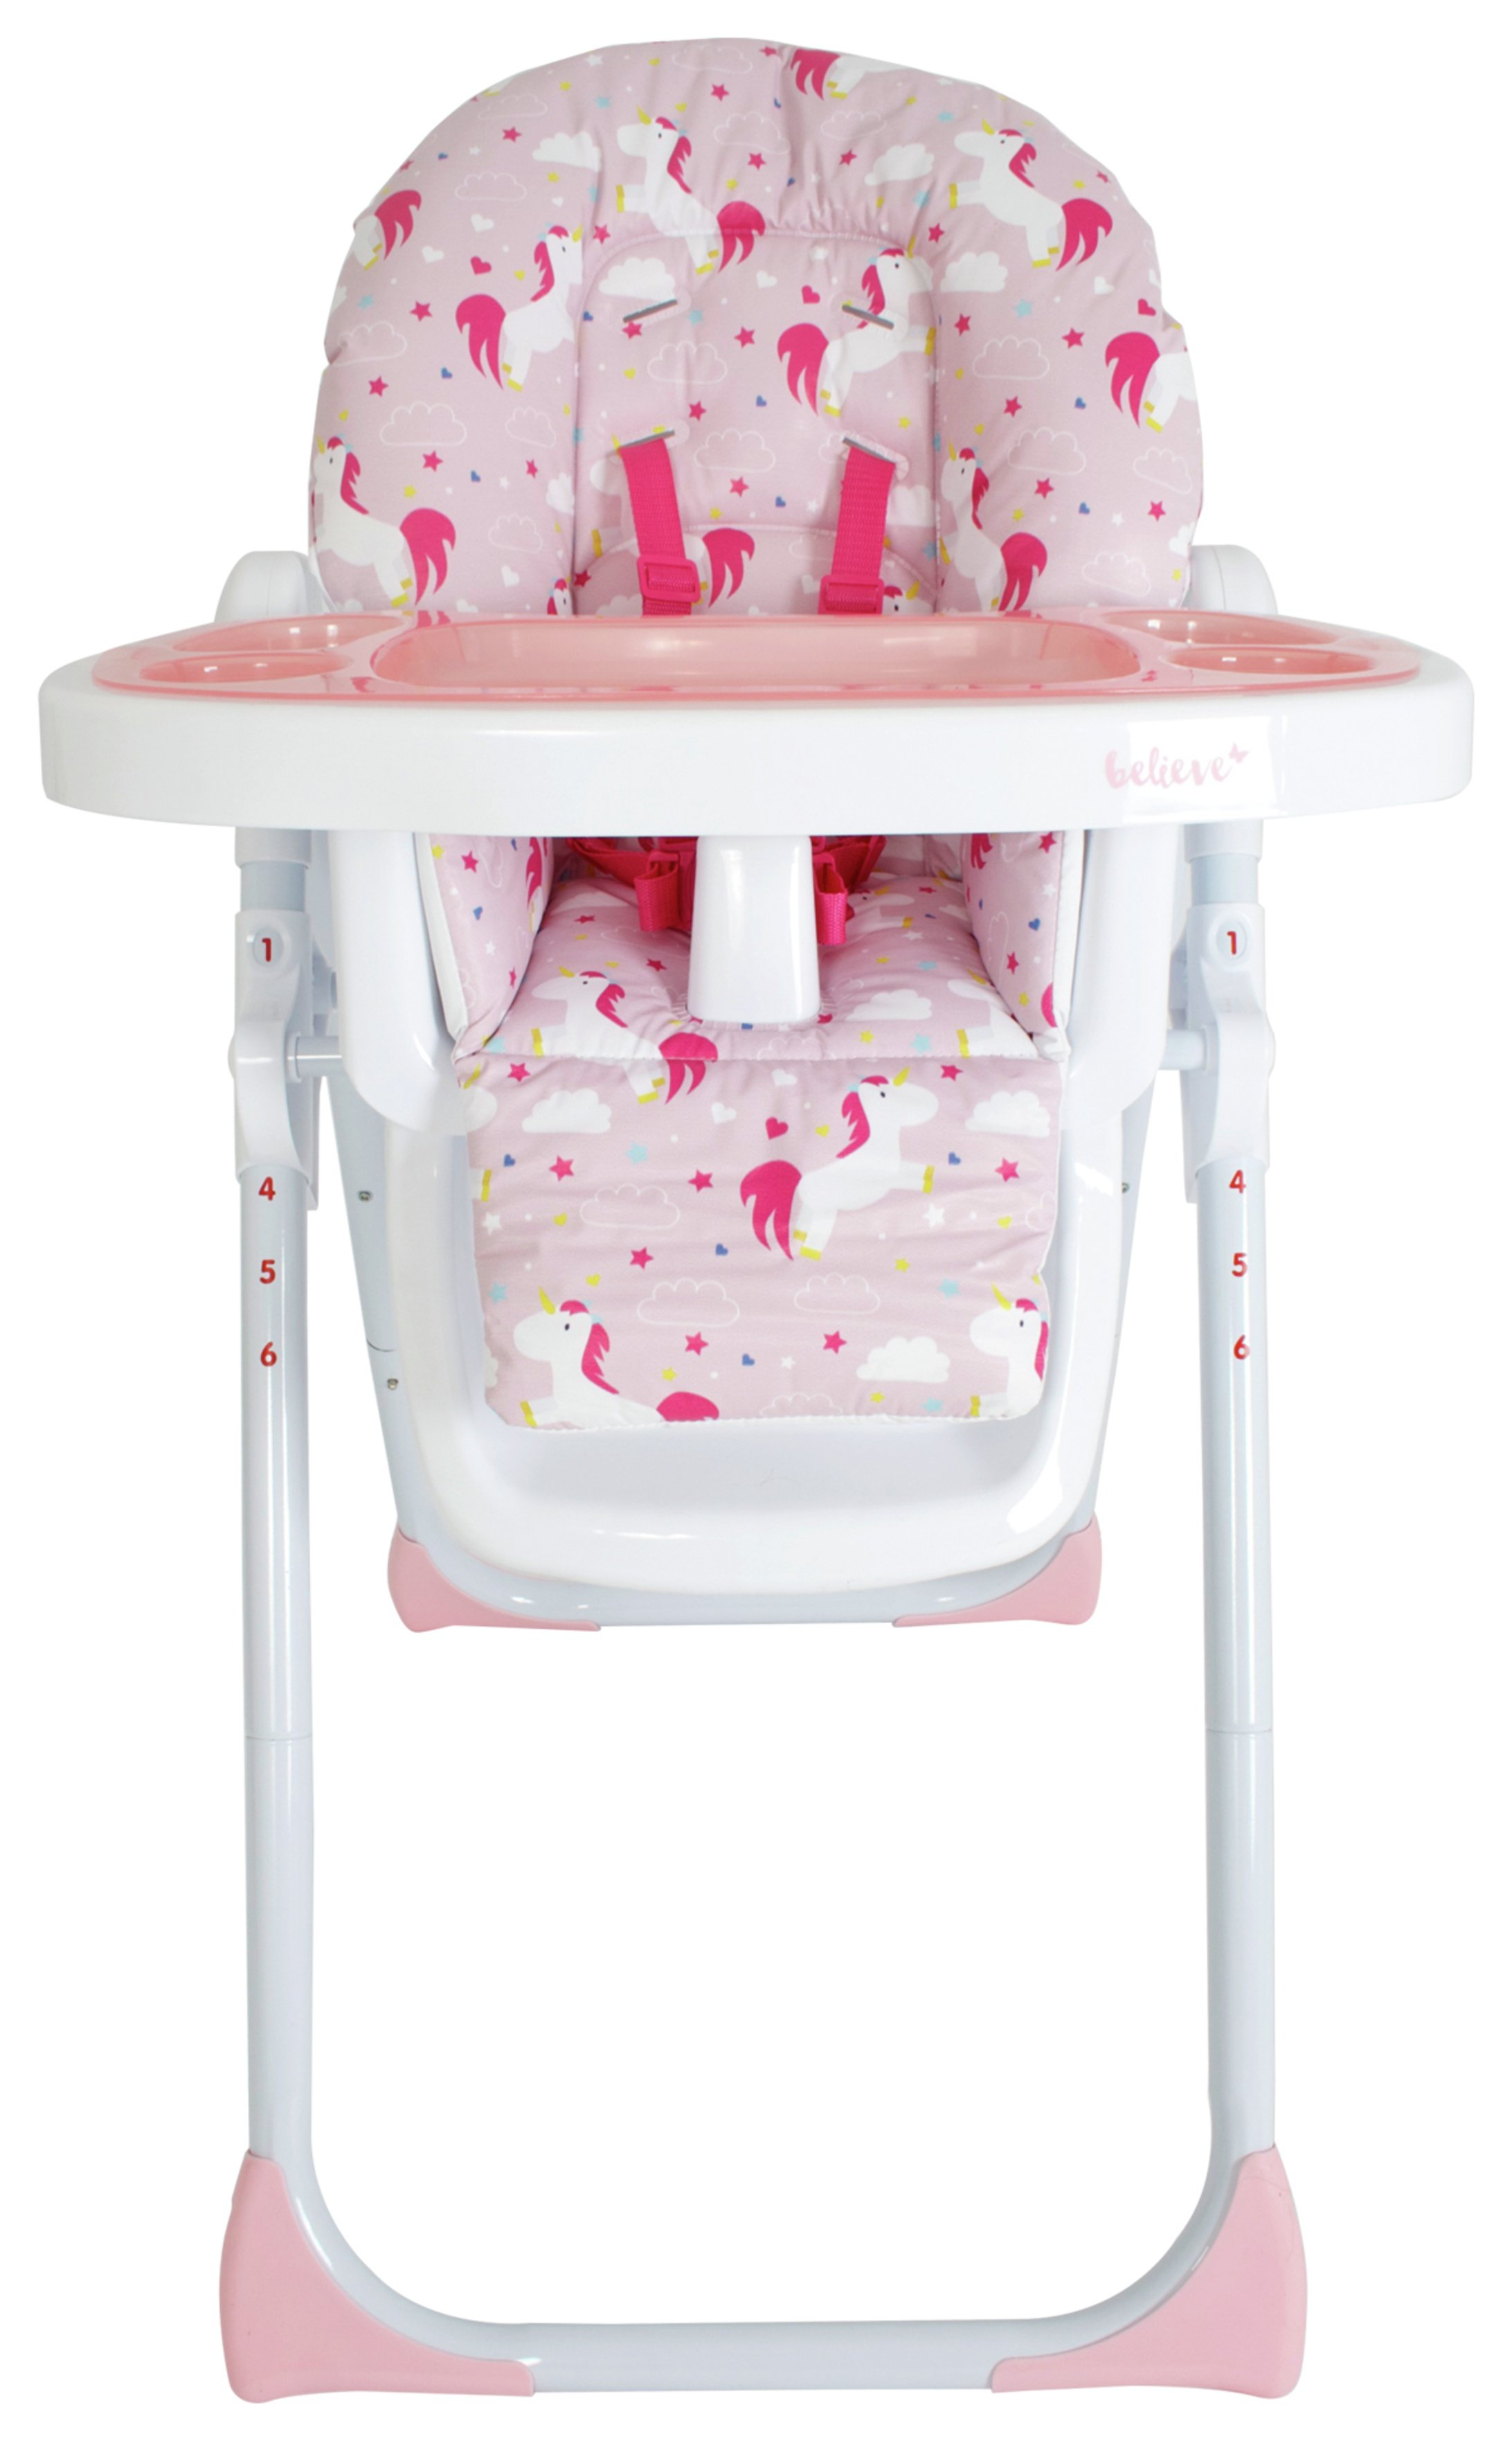 Image of My Babiie MBHC8 Katie Piper Highchair - Unicorns